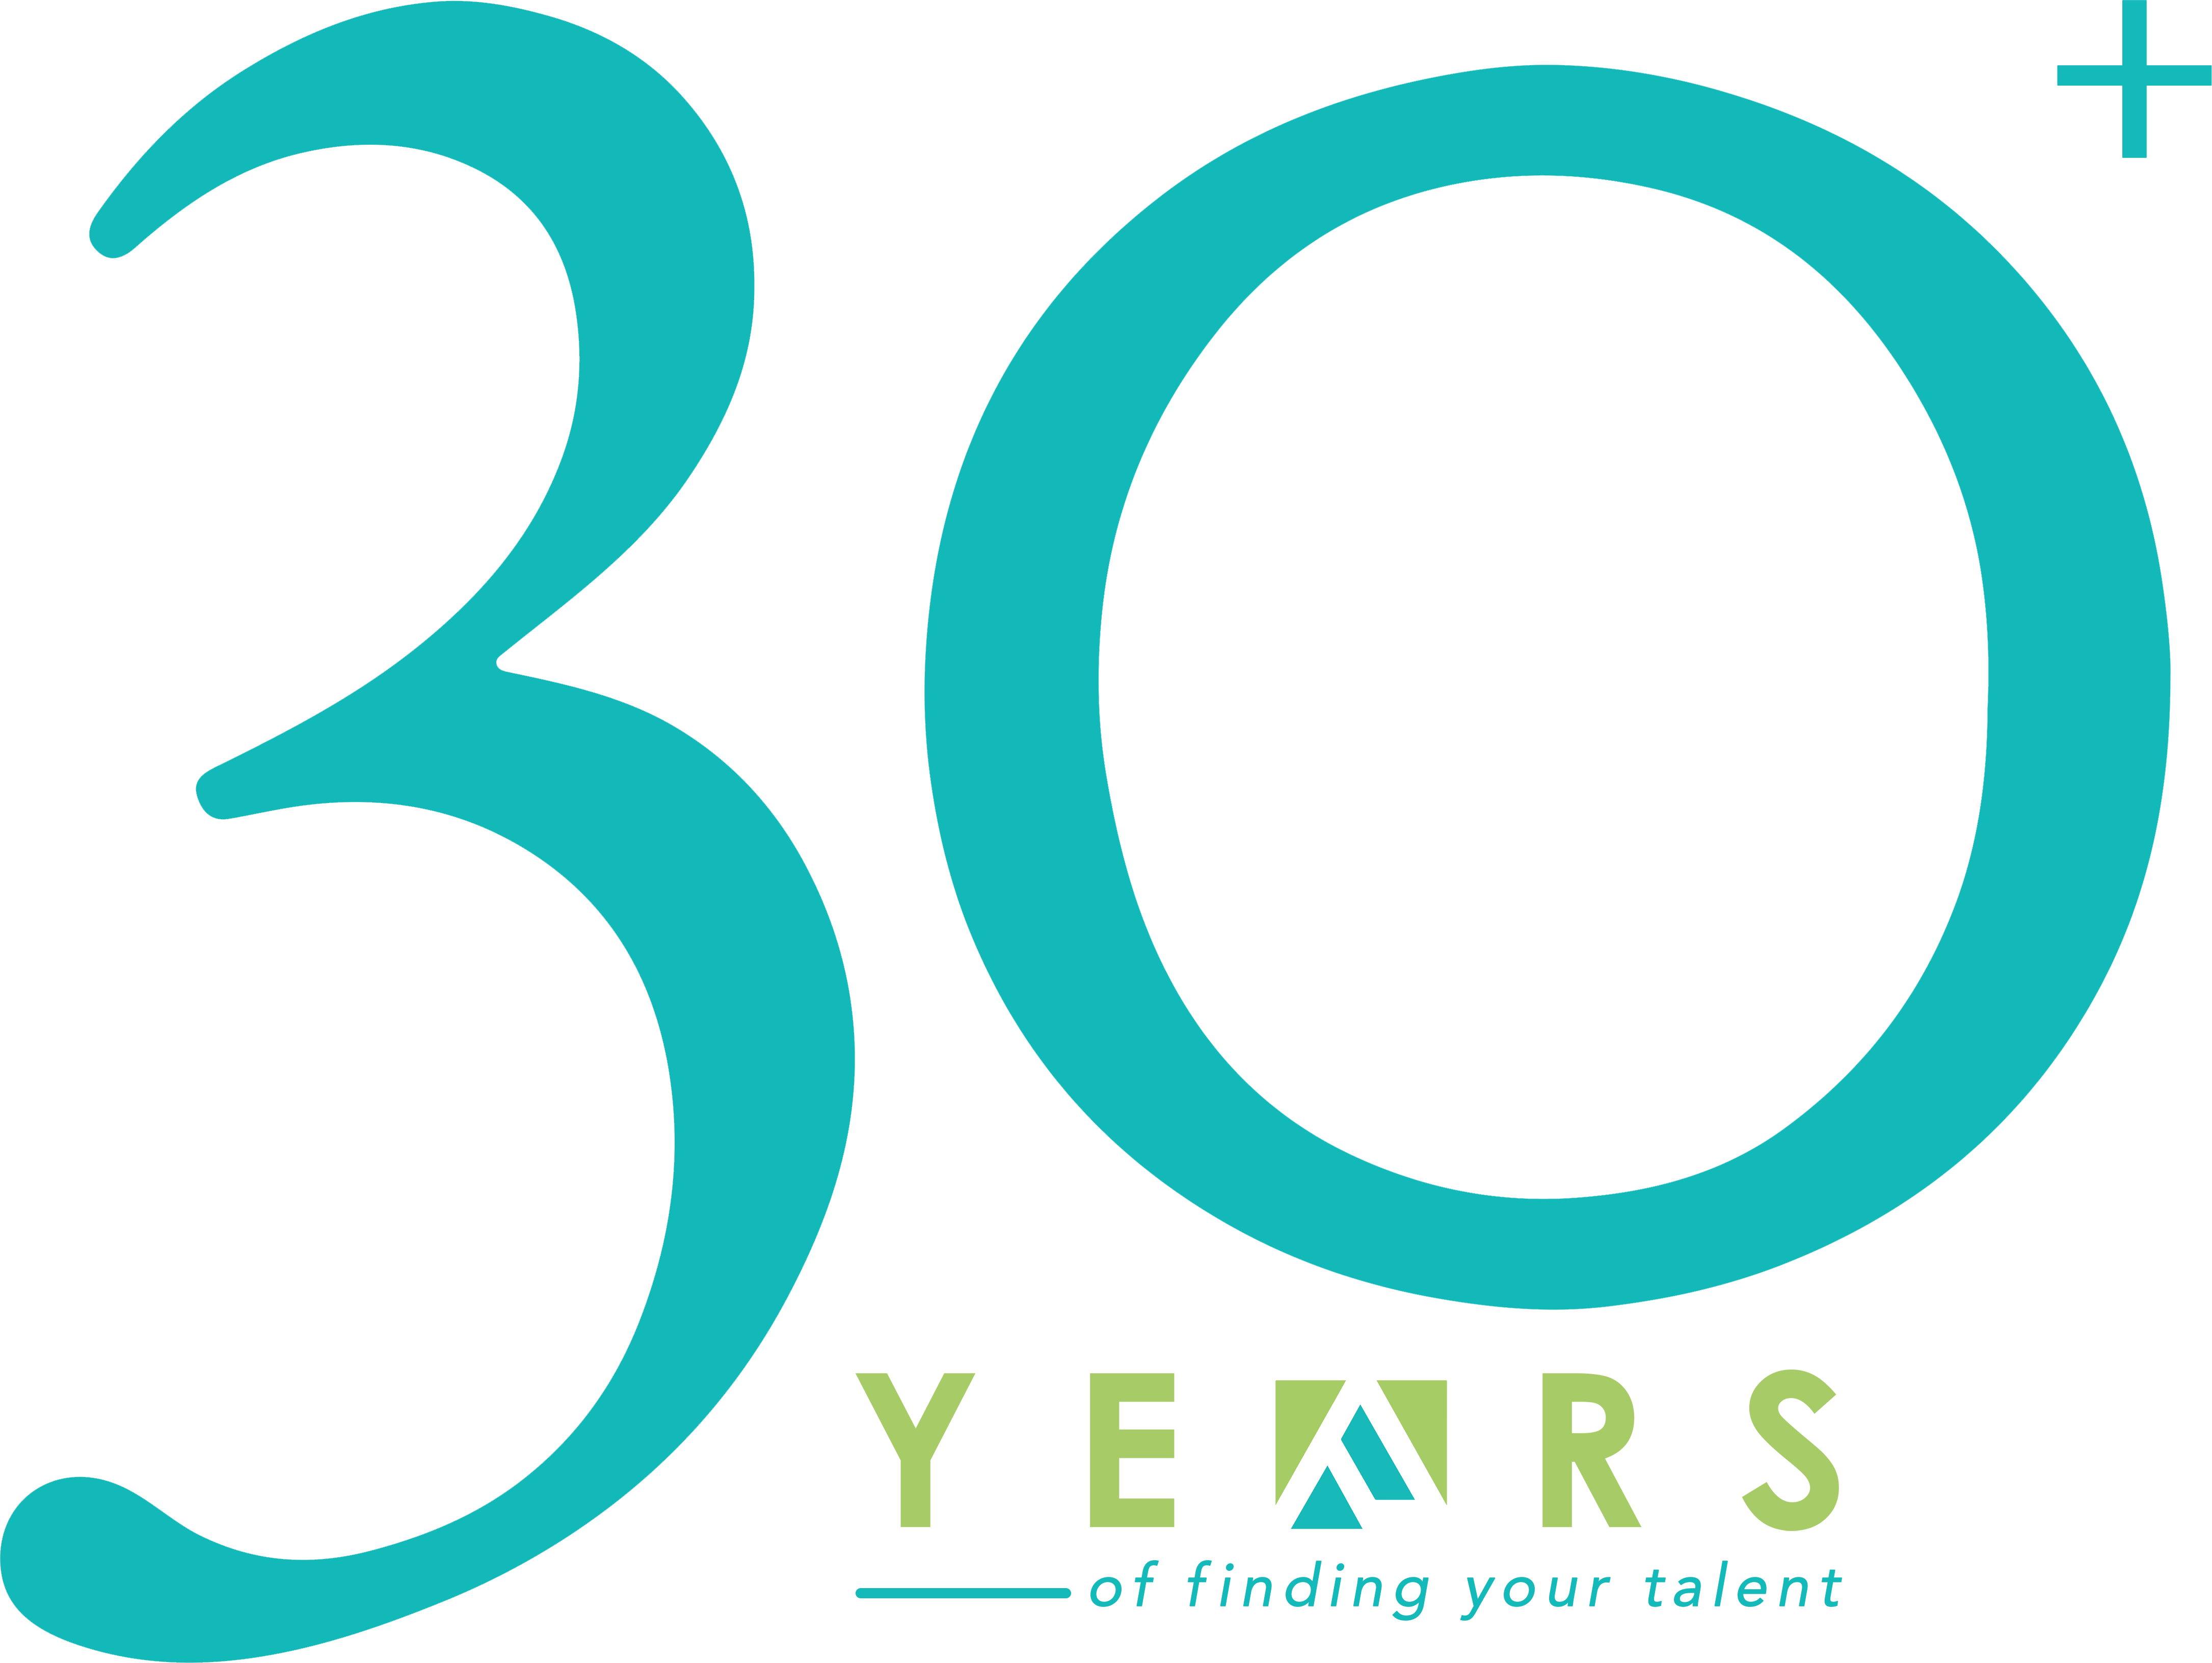 30+ years of finding your talent